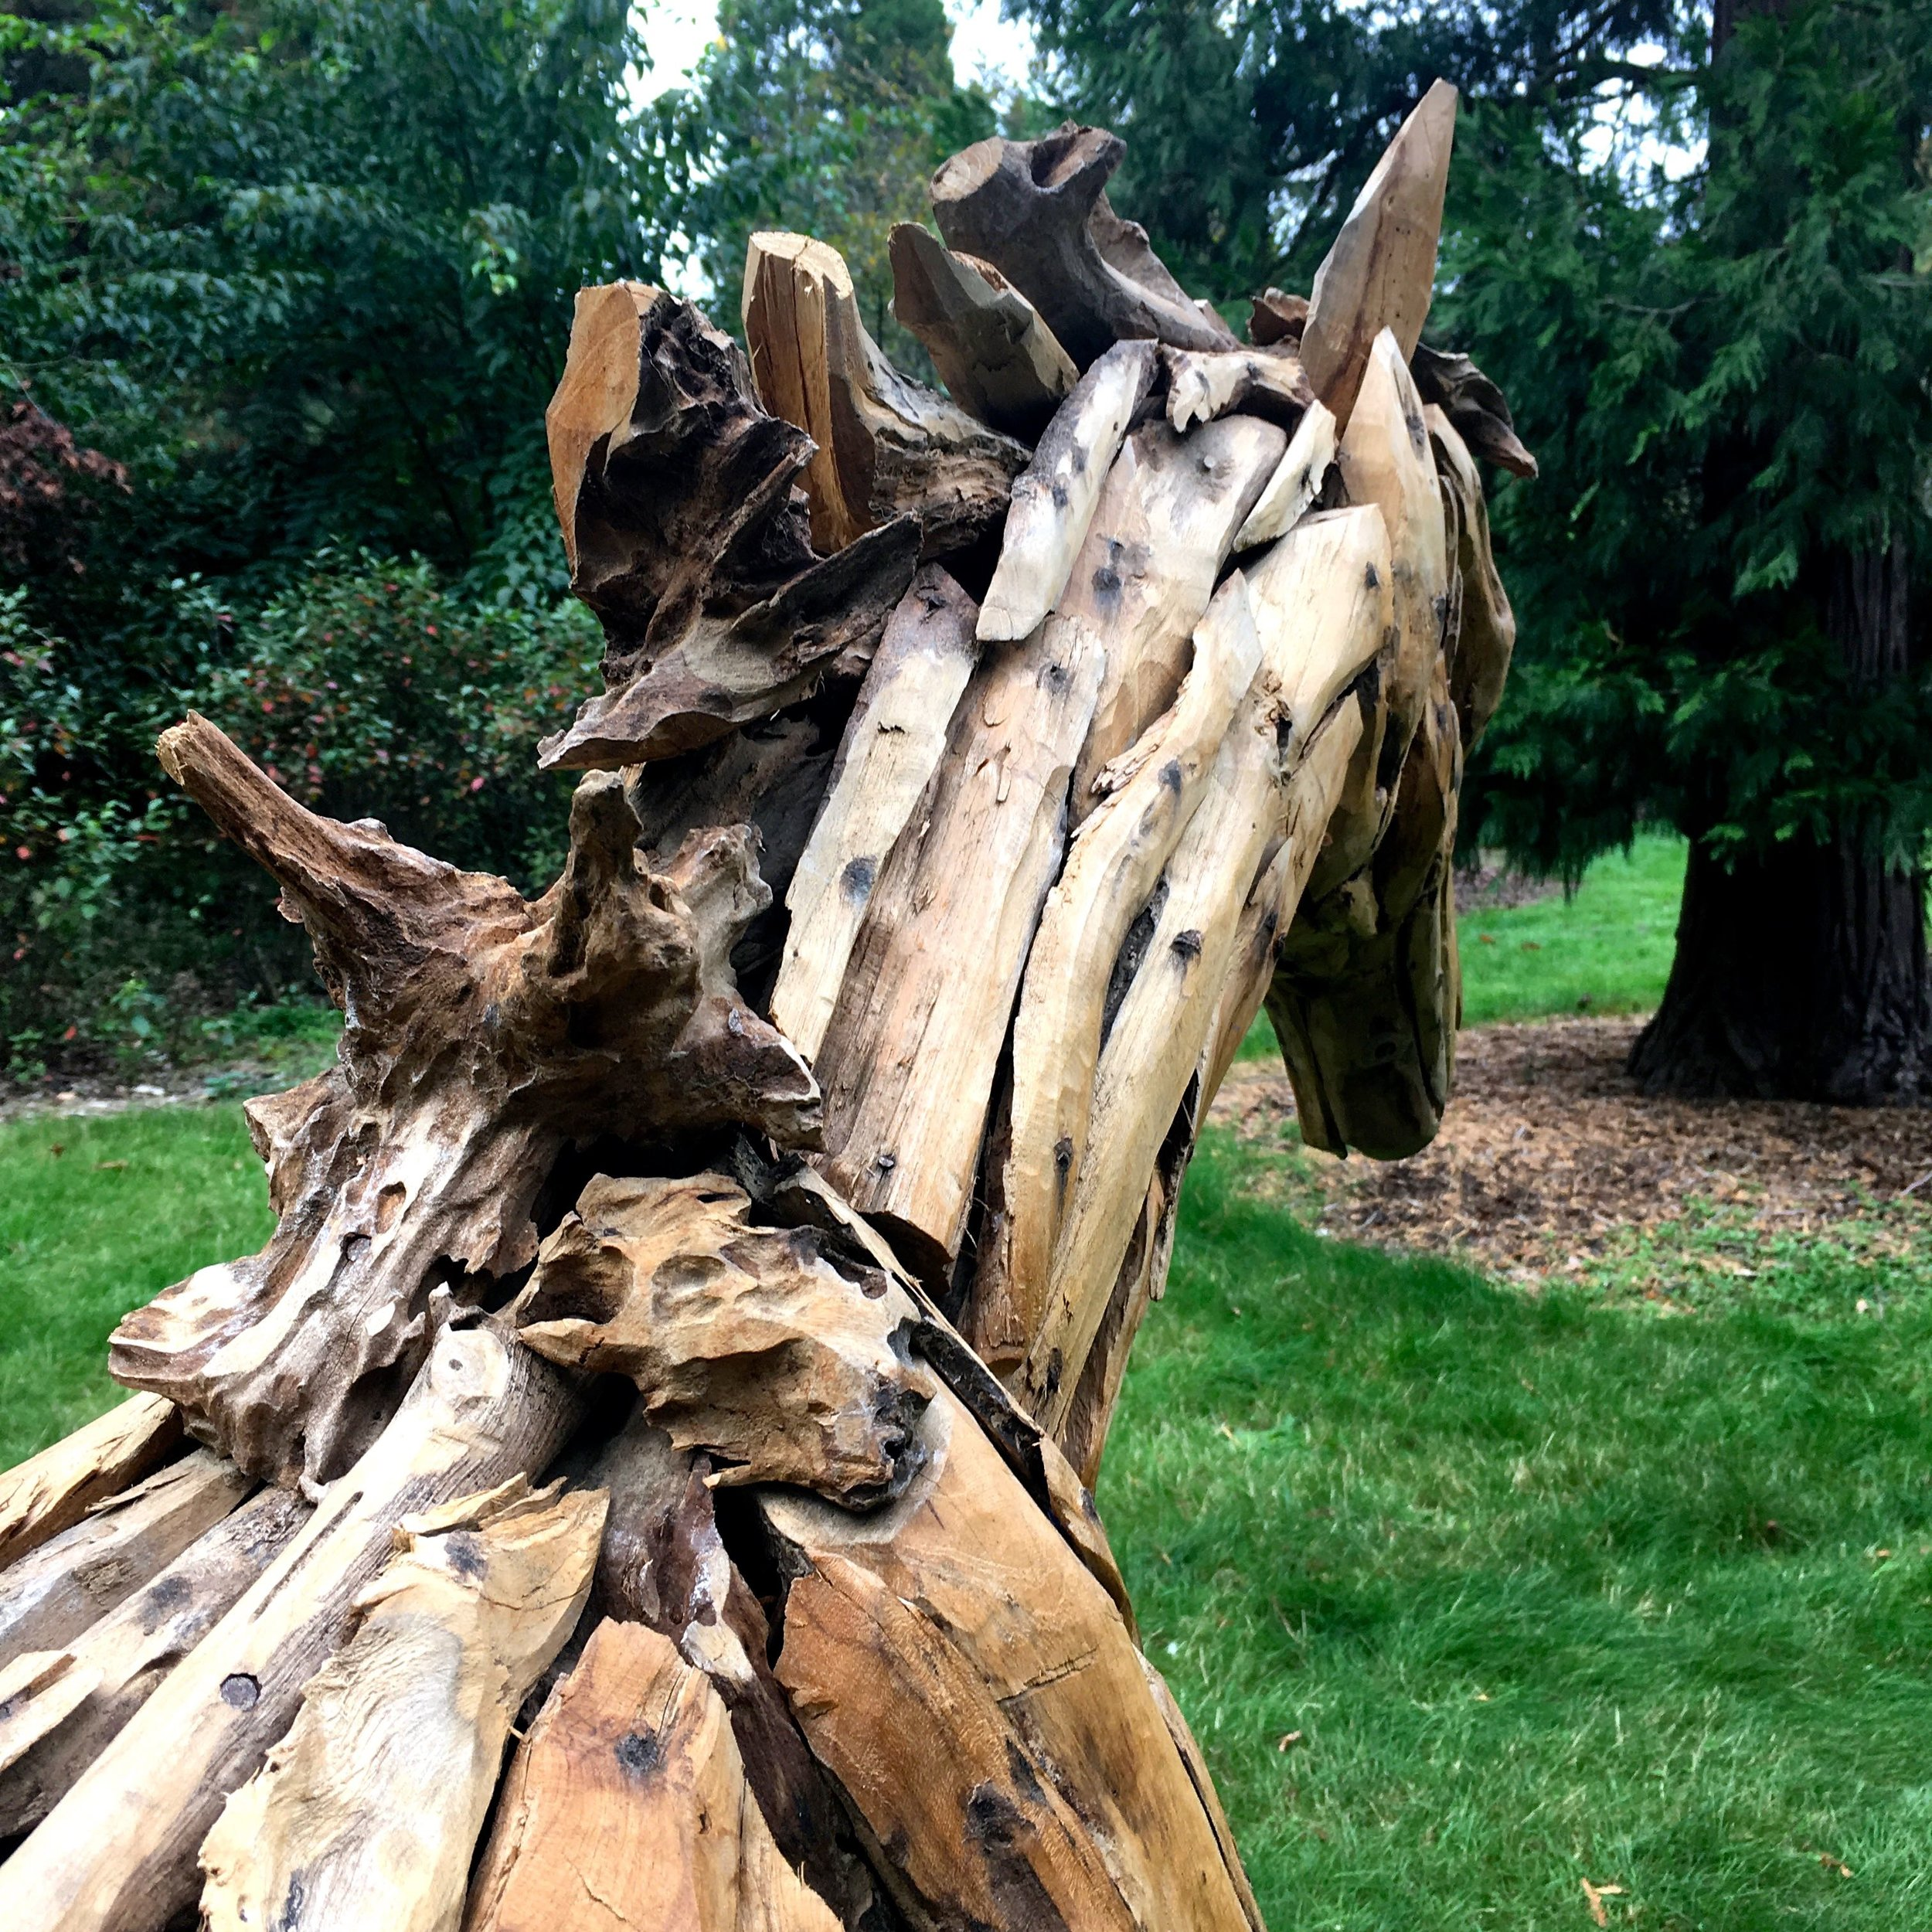 A horse sculpture in wood